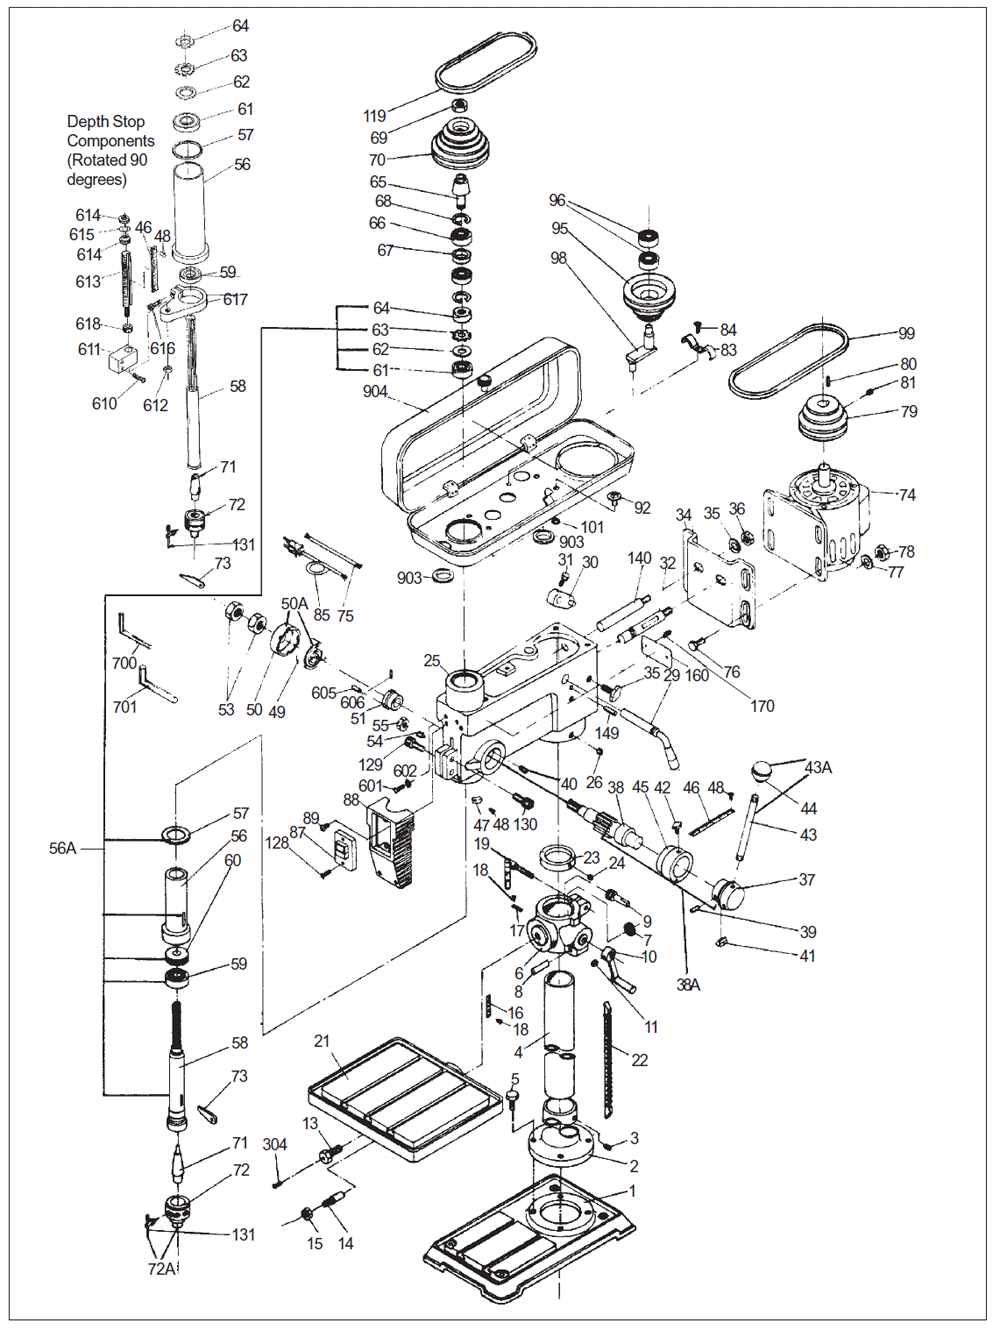 buy wilton 2550 replacement tool parts wilton 2550 drill press parts diagram